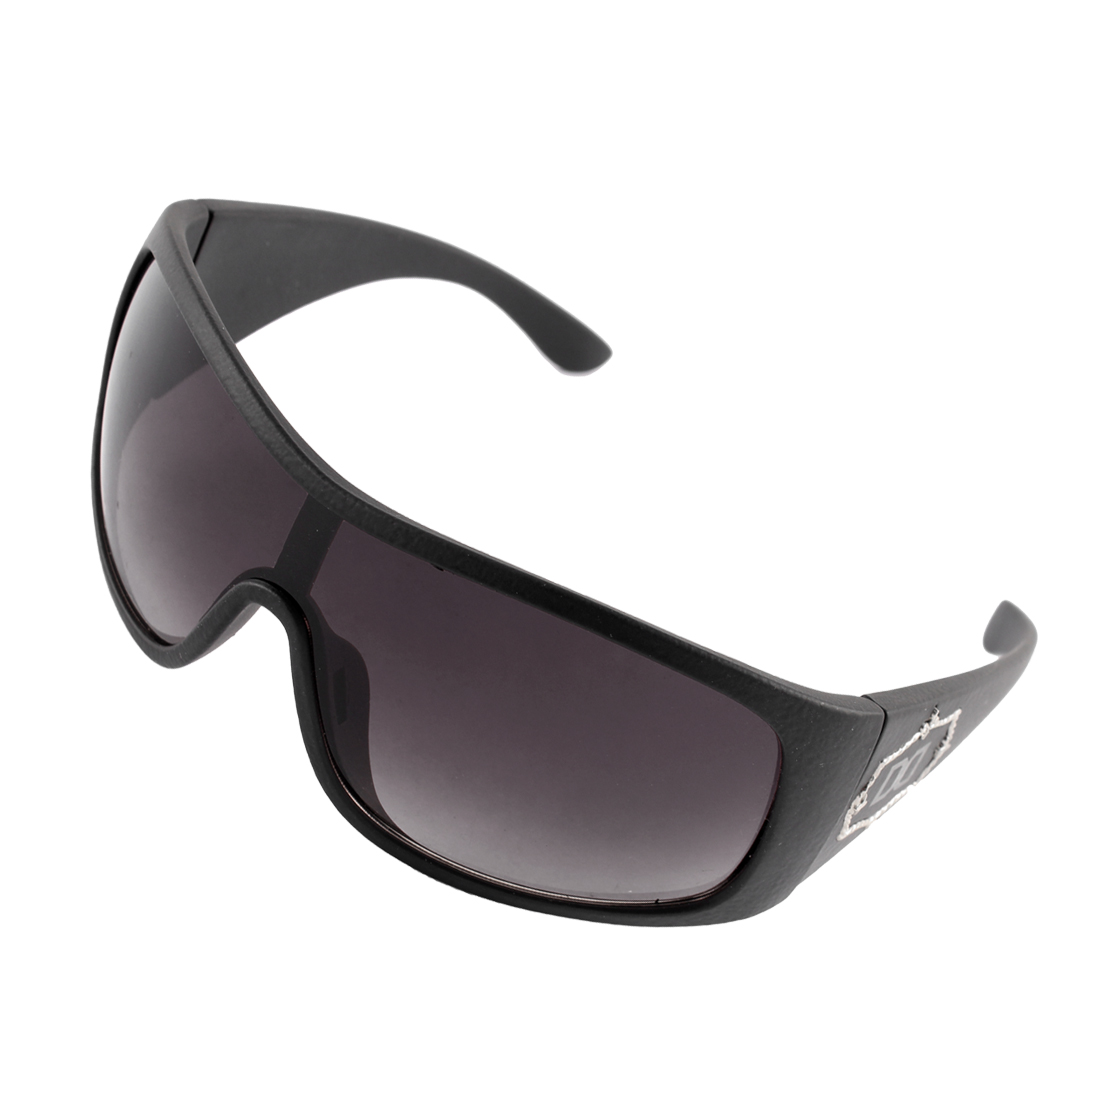 Plastic Frosted Men Outdoor Sports Sunglasses Driving Eyewear Black